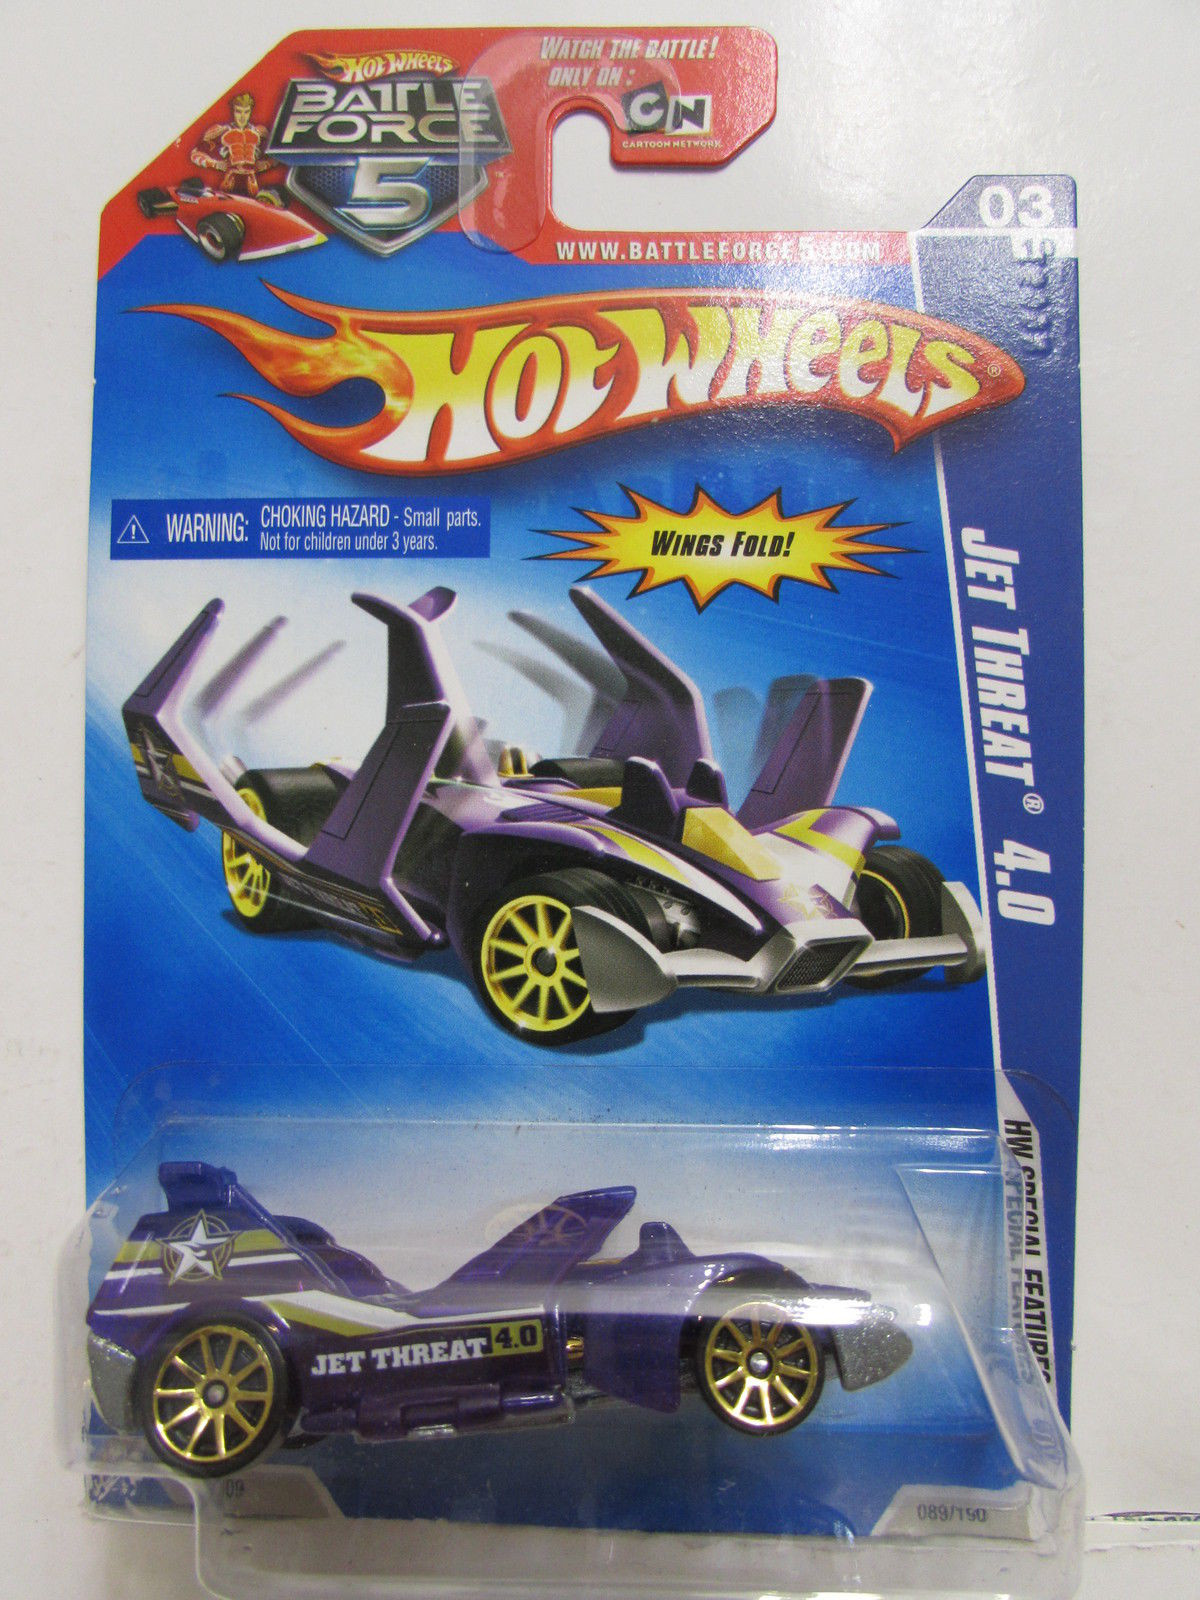 HOT WHEELS 2009 HW SPECIAL FEATURES JET THREAT 4.0 PURPLE